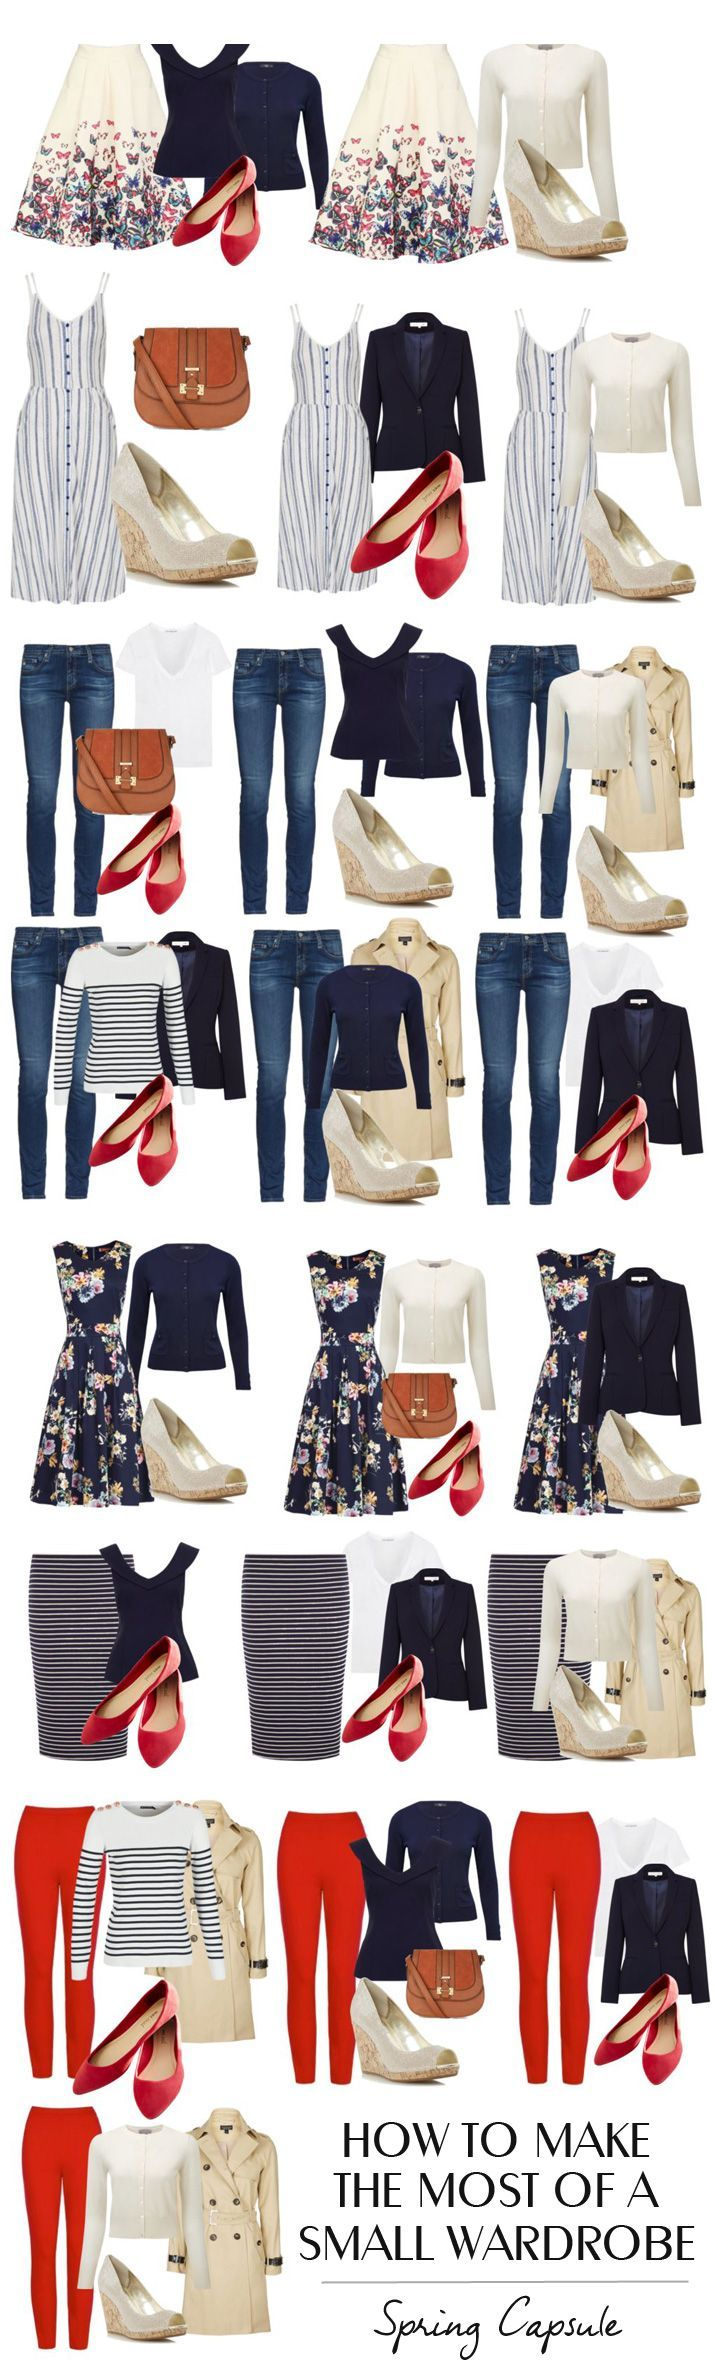 Tendance Chaussures – Classic Capsule Wardrobe for Spring 2016> Women's Fashion Police